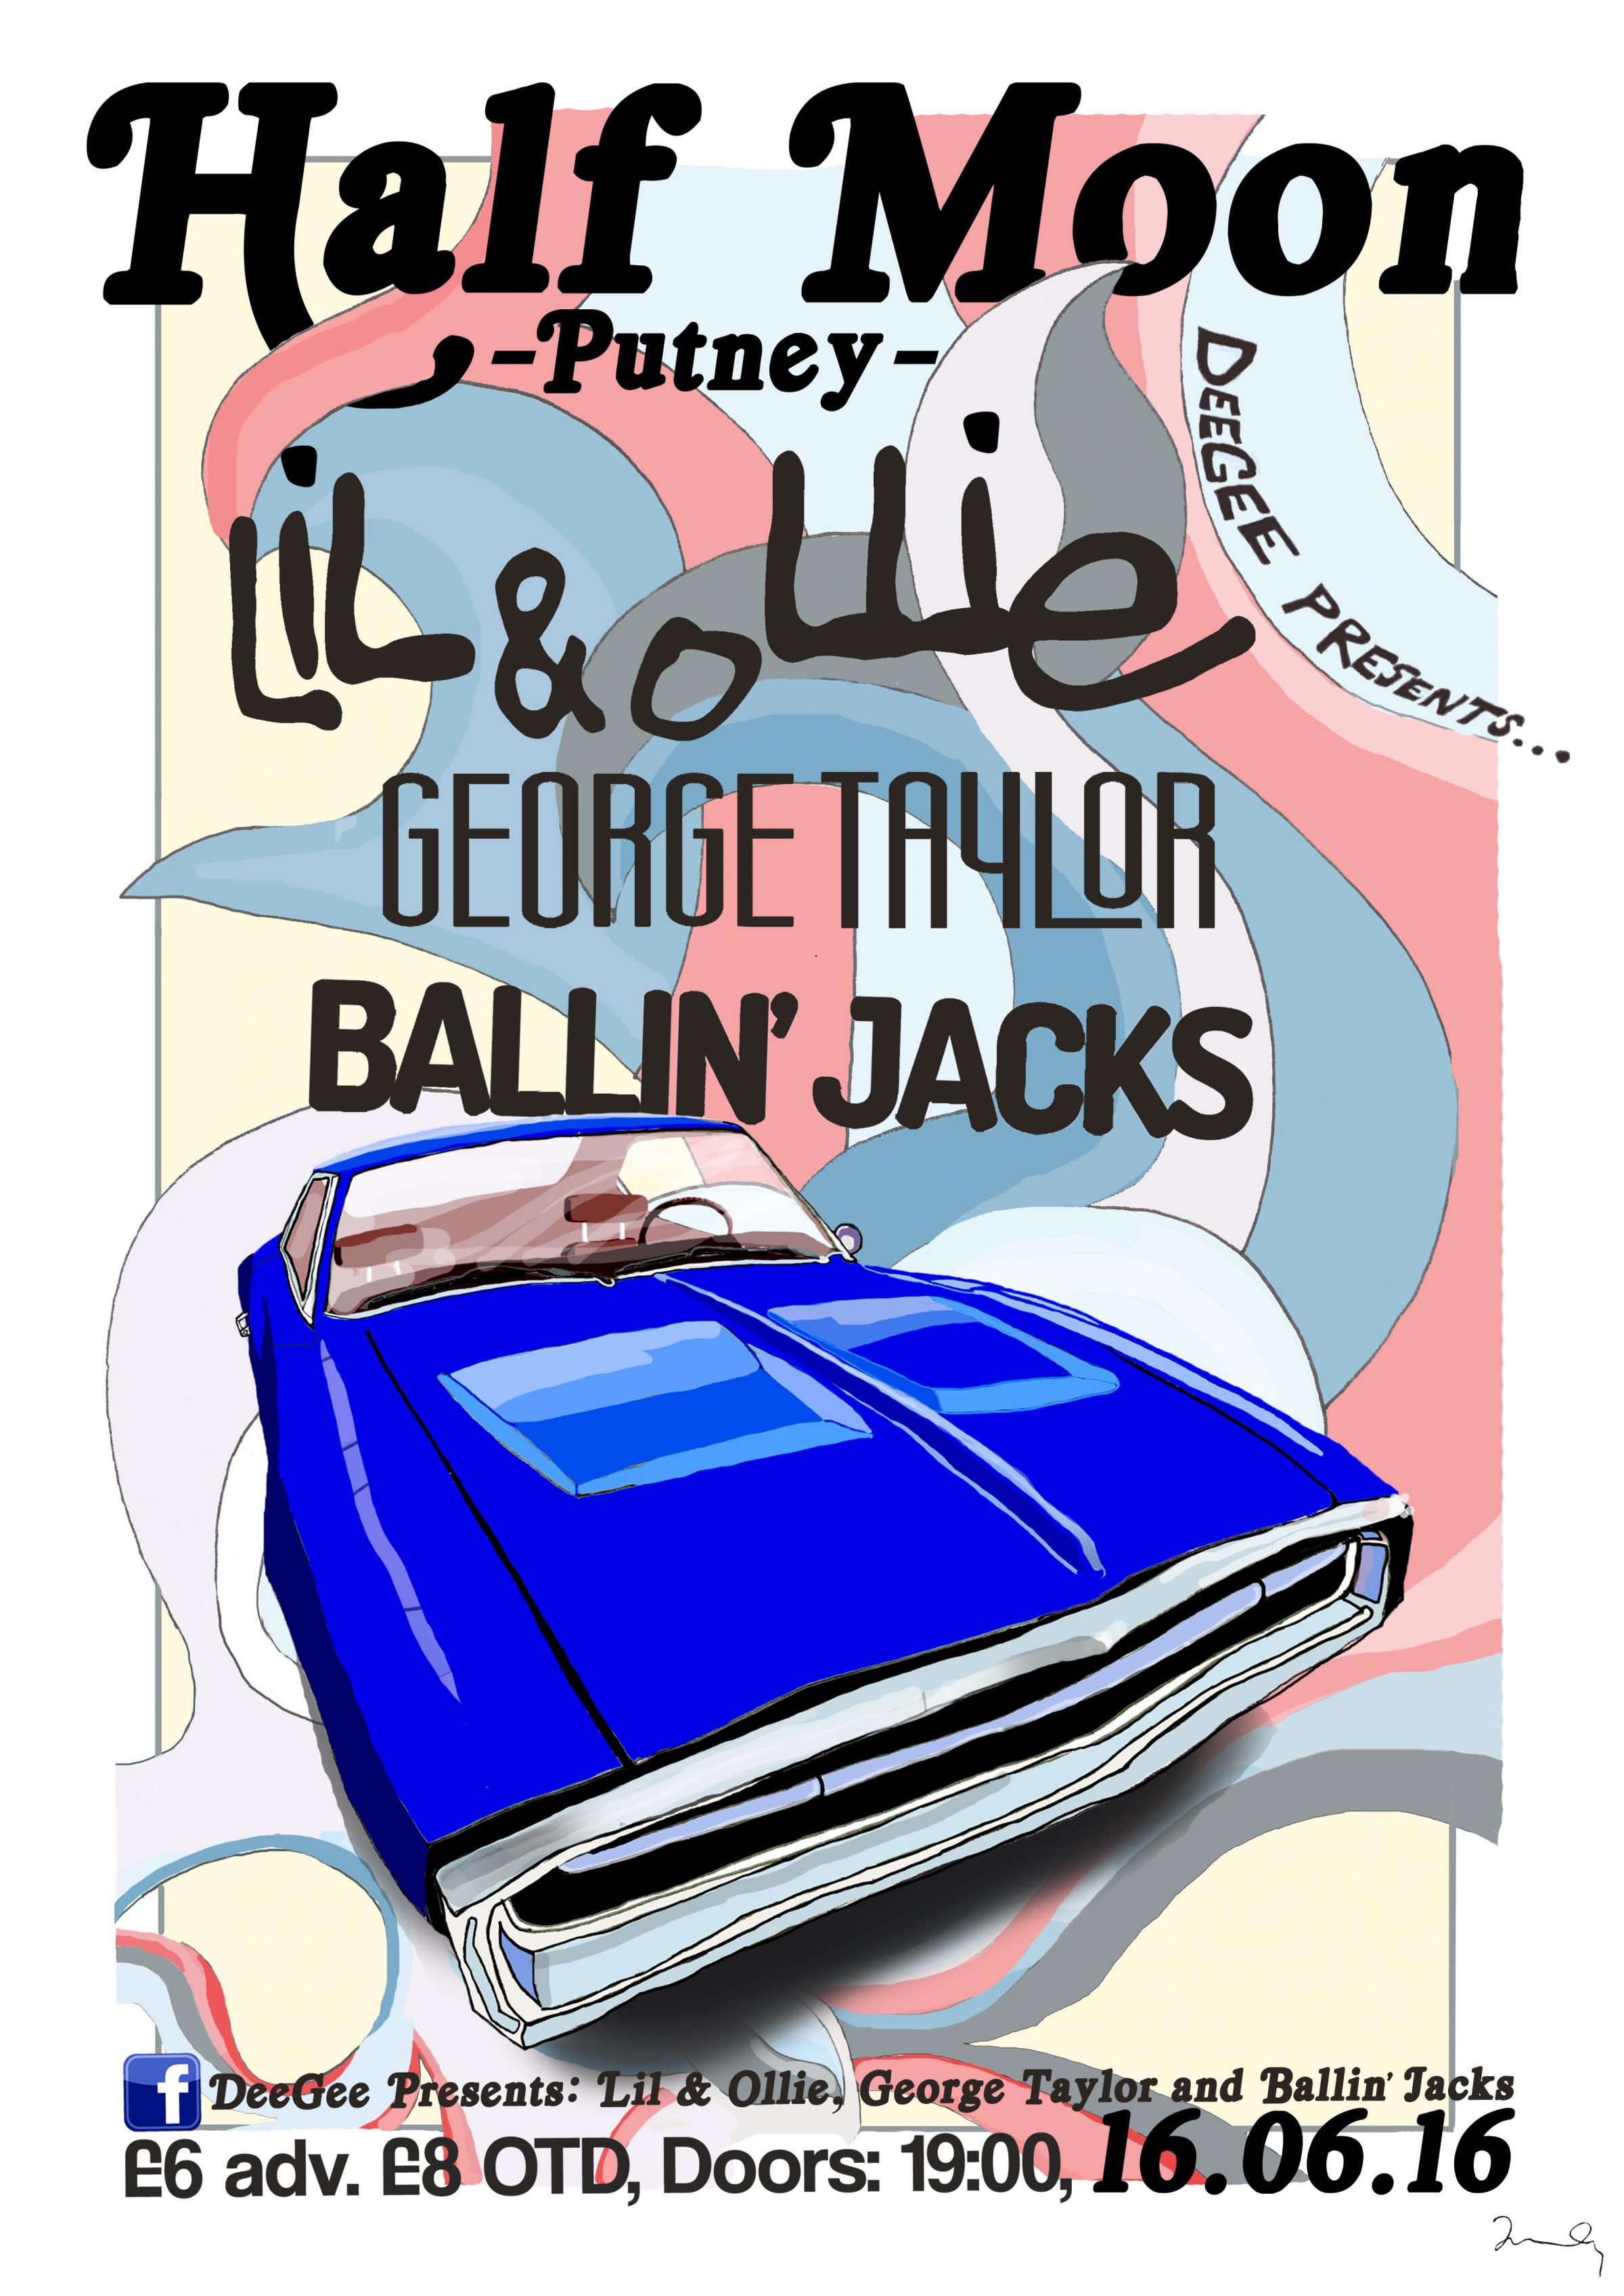 DeeGee Presents Lil Rice & Ollie Clark + George Taylor + Ballin' Jacks